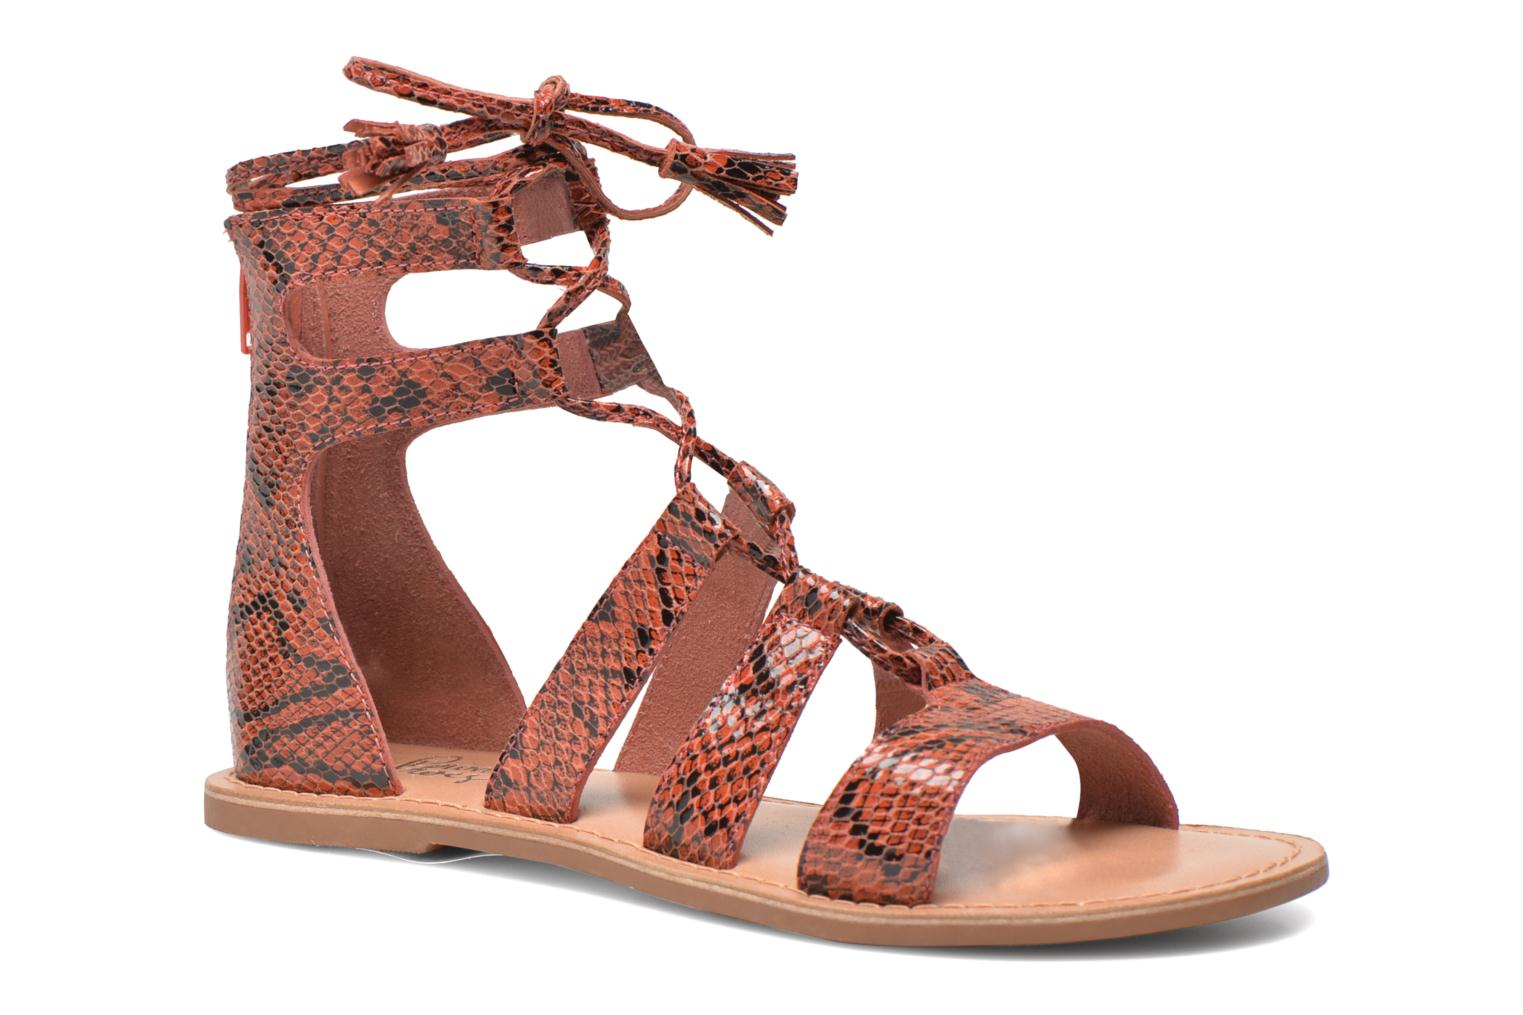 SUGLIHIGH CUIR CORAL SNAKE